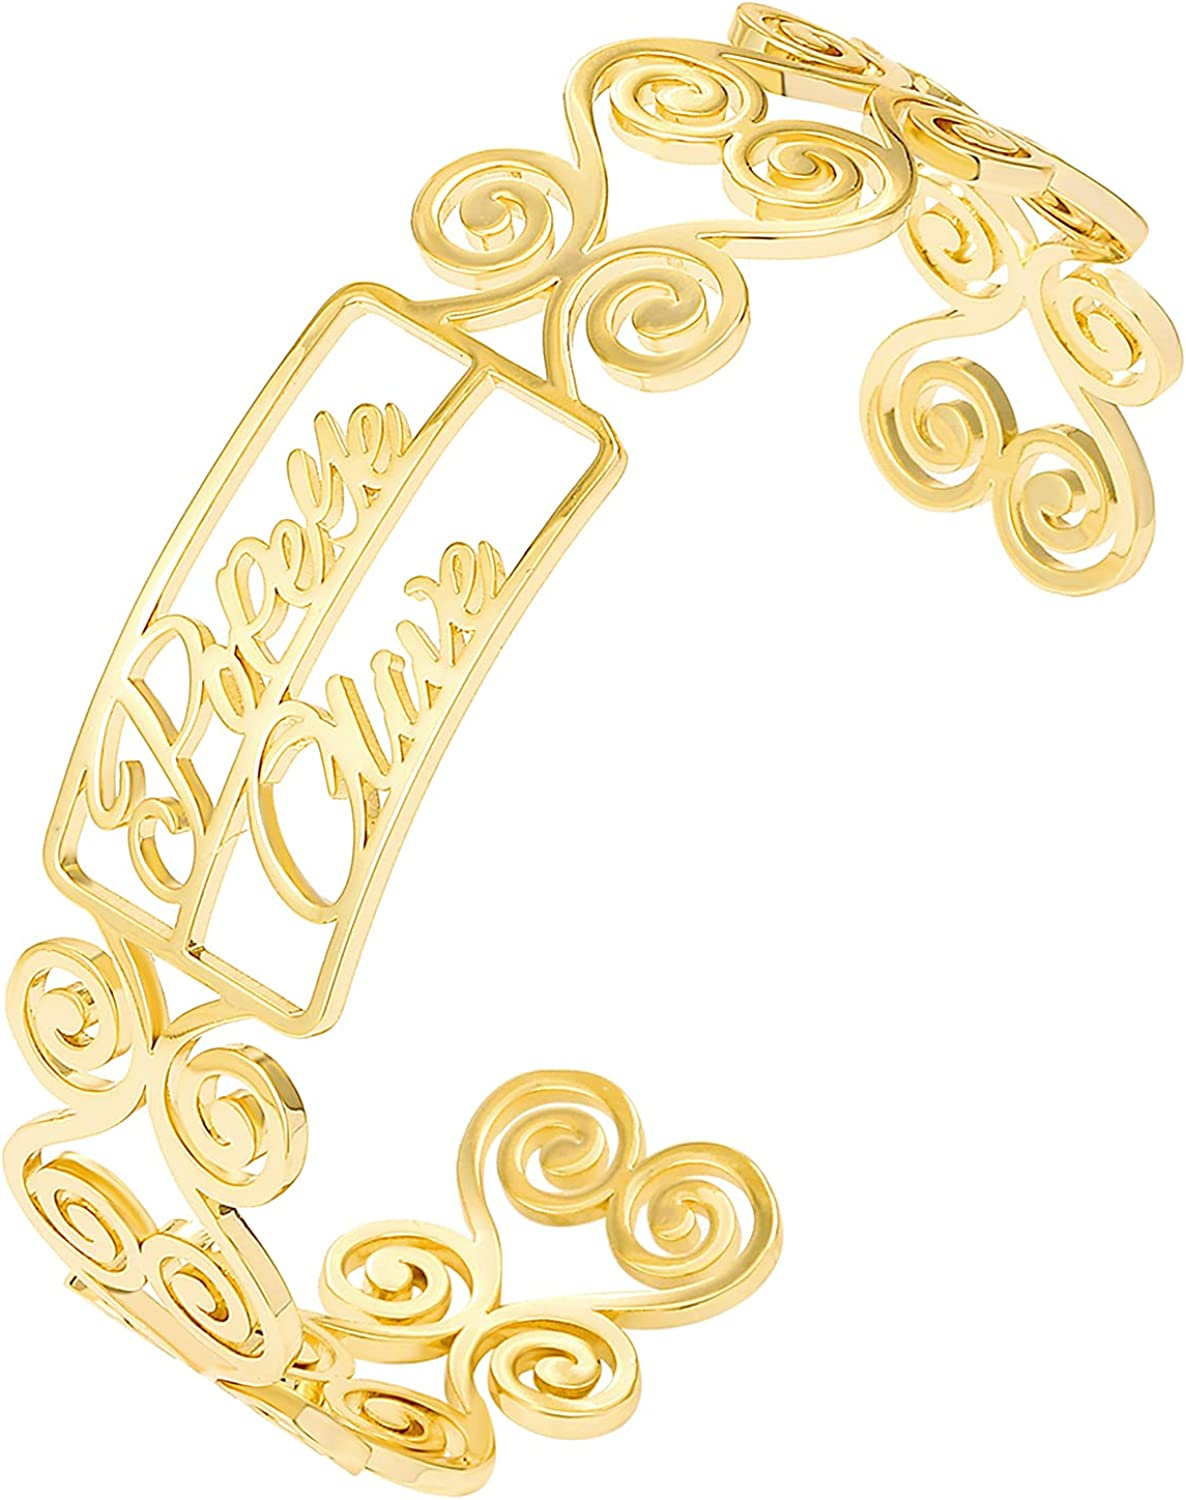 BUREI Personalized Name Bracelet Custom Name Cuff Bracelets Gold Plated Bangles Jewellery Gifts for Women Girls